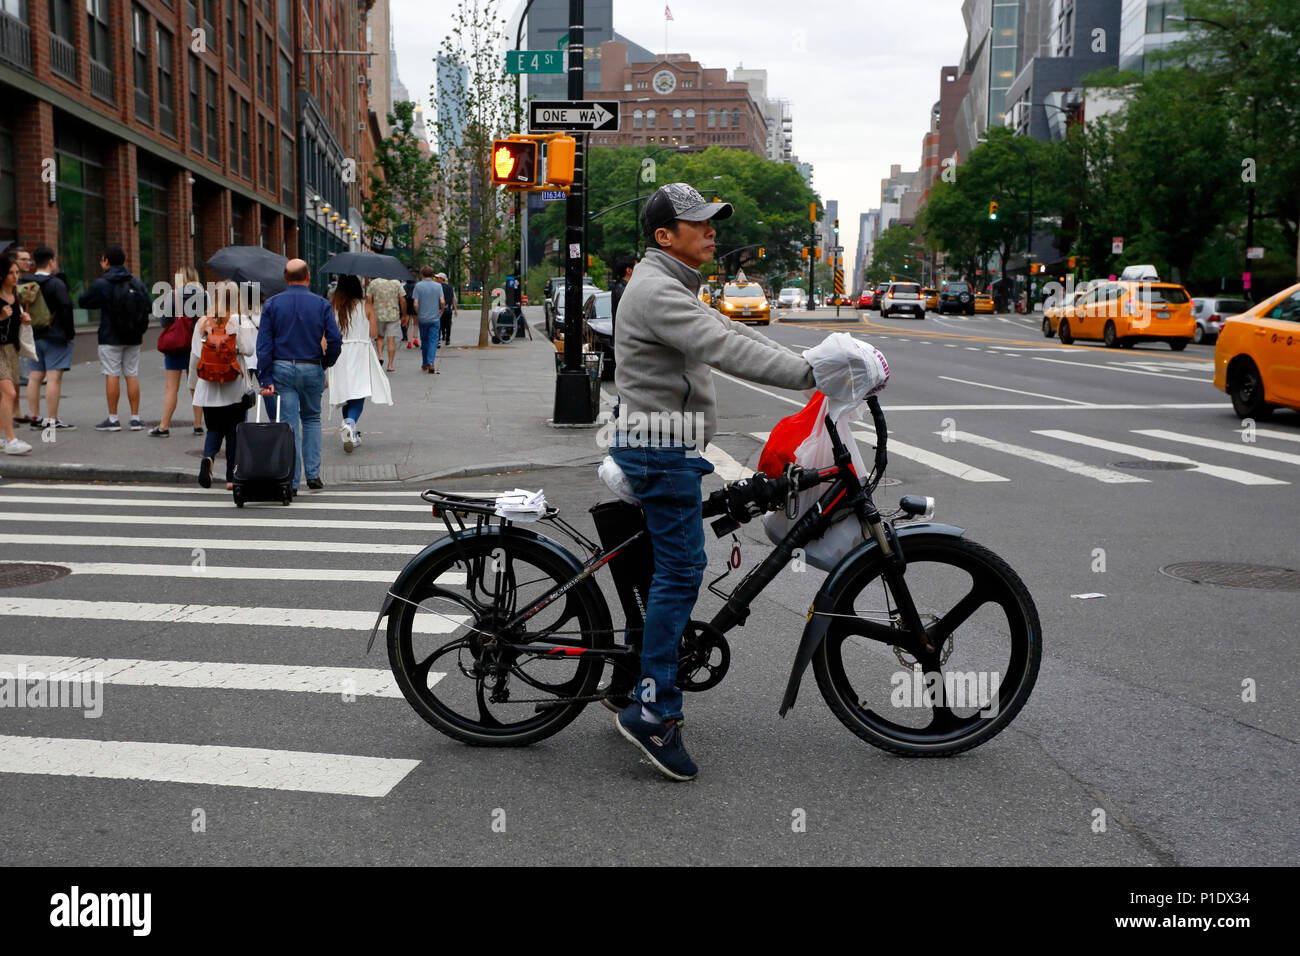 A Nyc Food Delivery Person On An Electric Bicycle Stock Photo